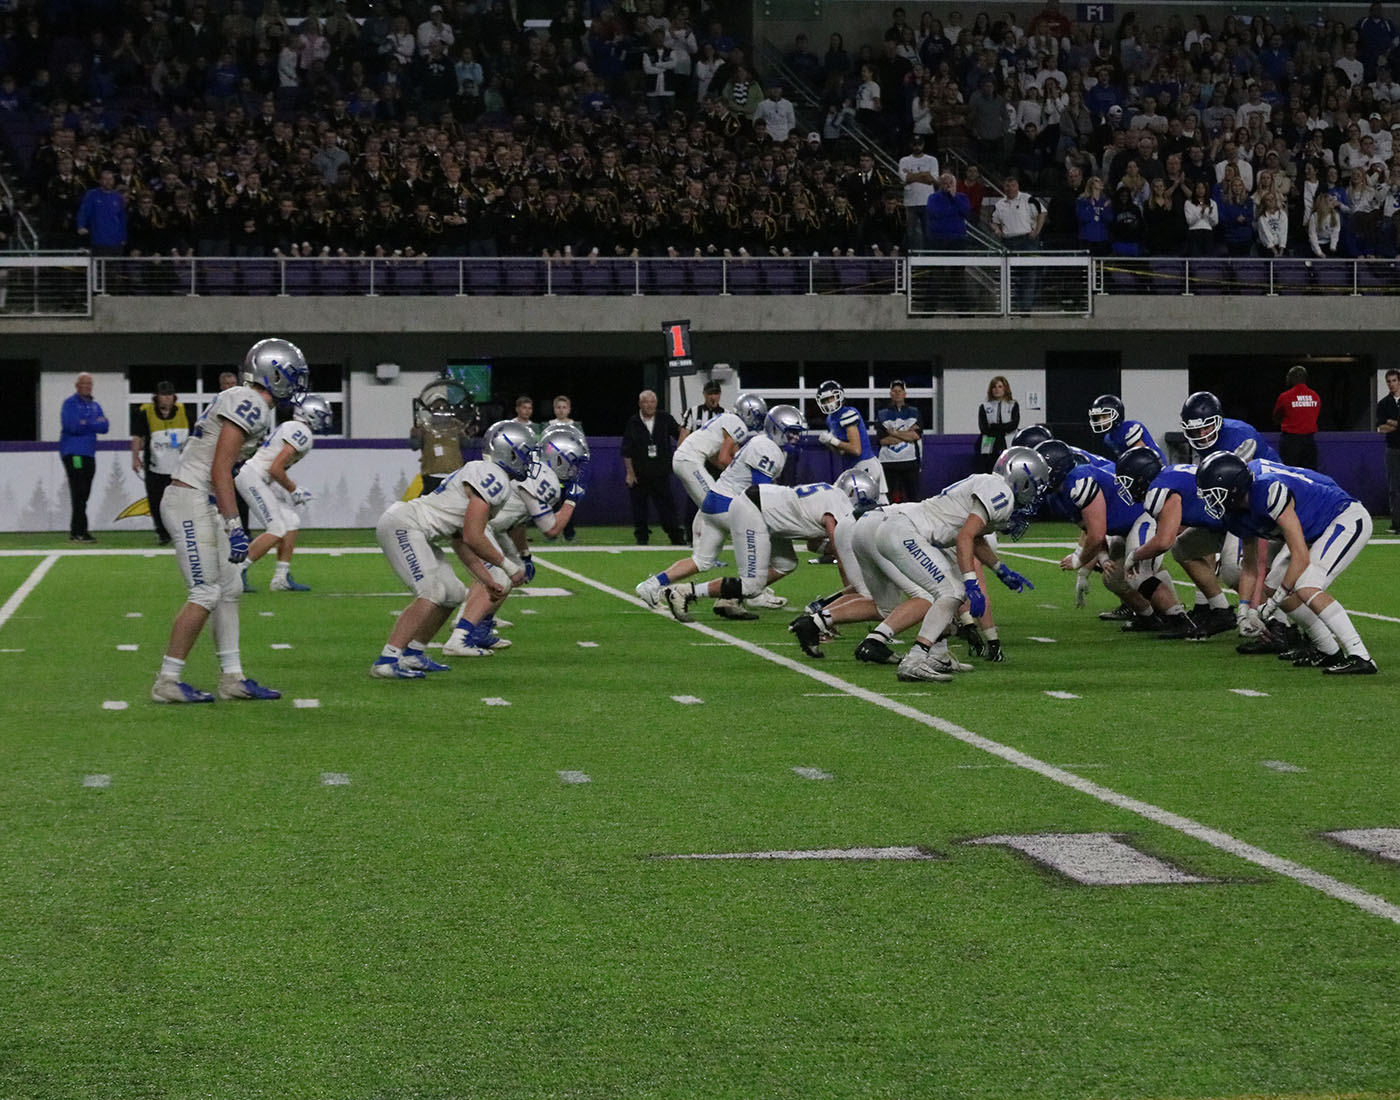 Owatonna+defense+gets+lined+up+for+the+snap+